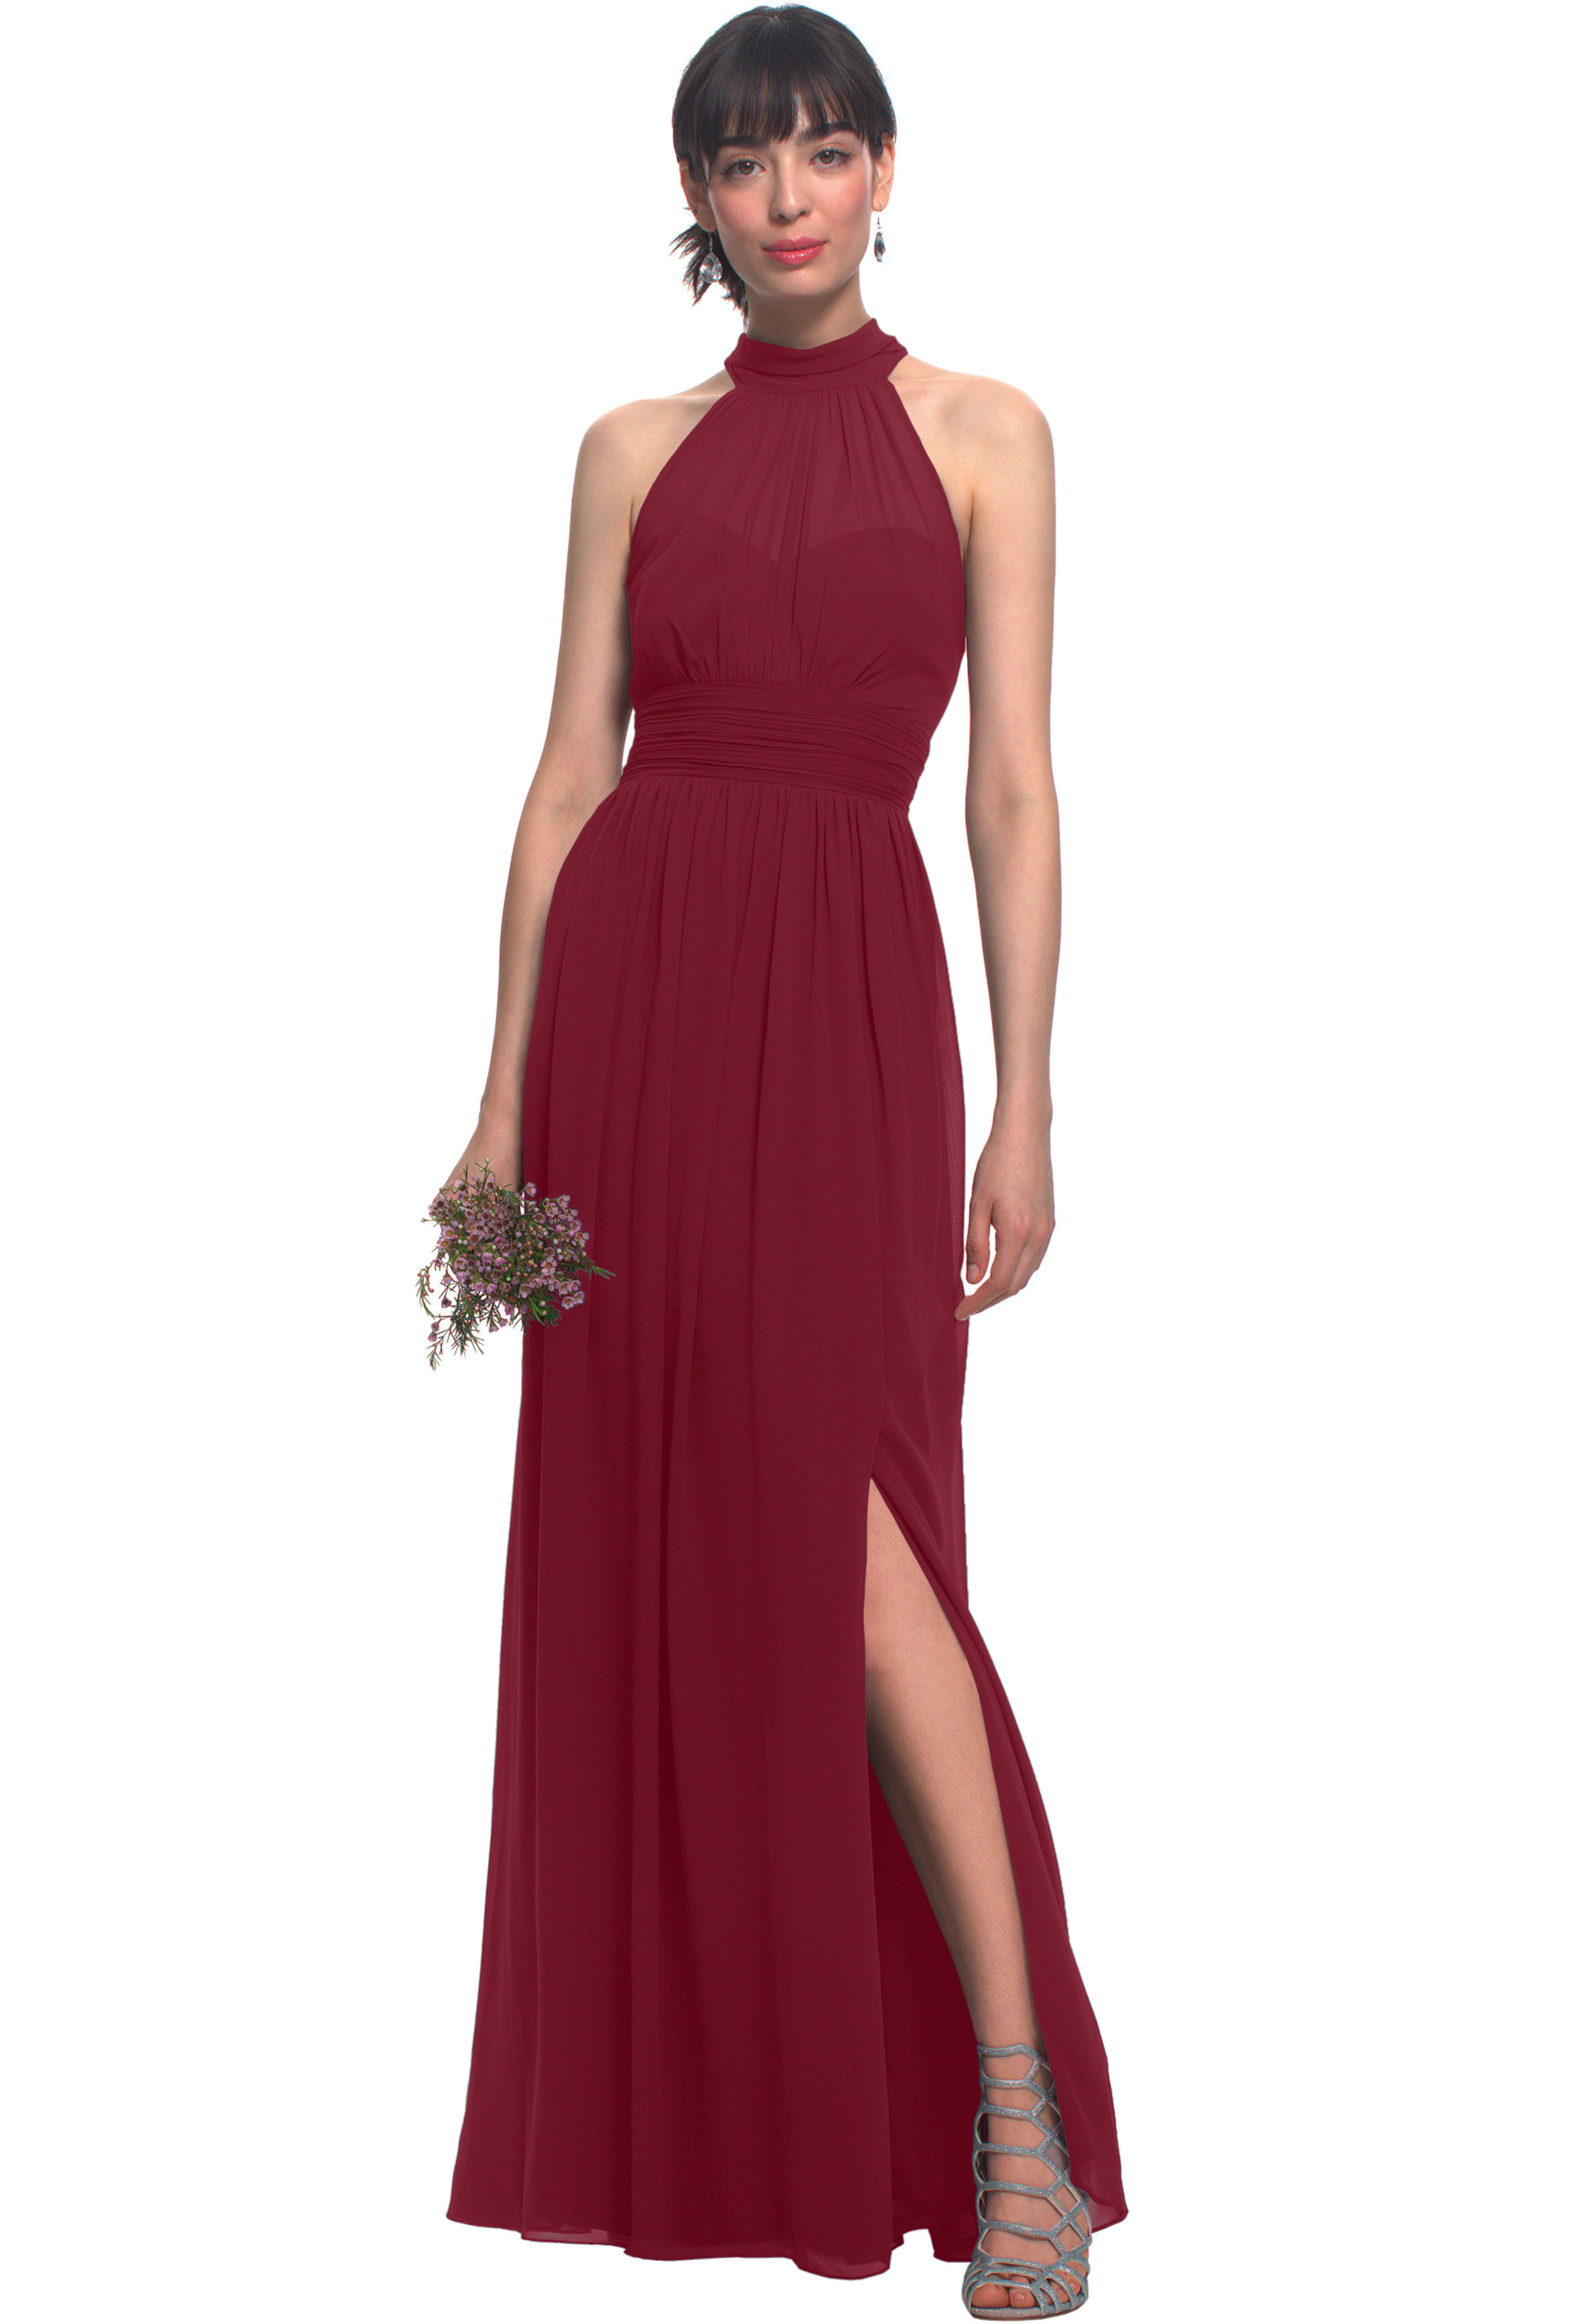 Bill Levkoff CRANBERRY Chiffon Illusion Side Slit gown, $170.00 Front